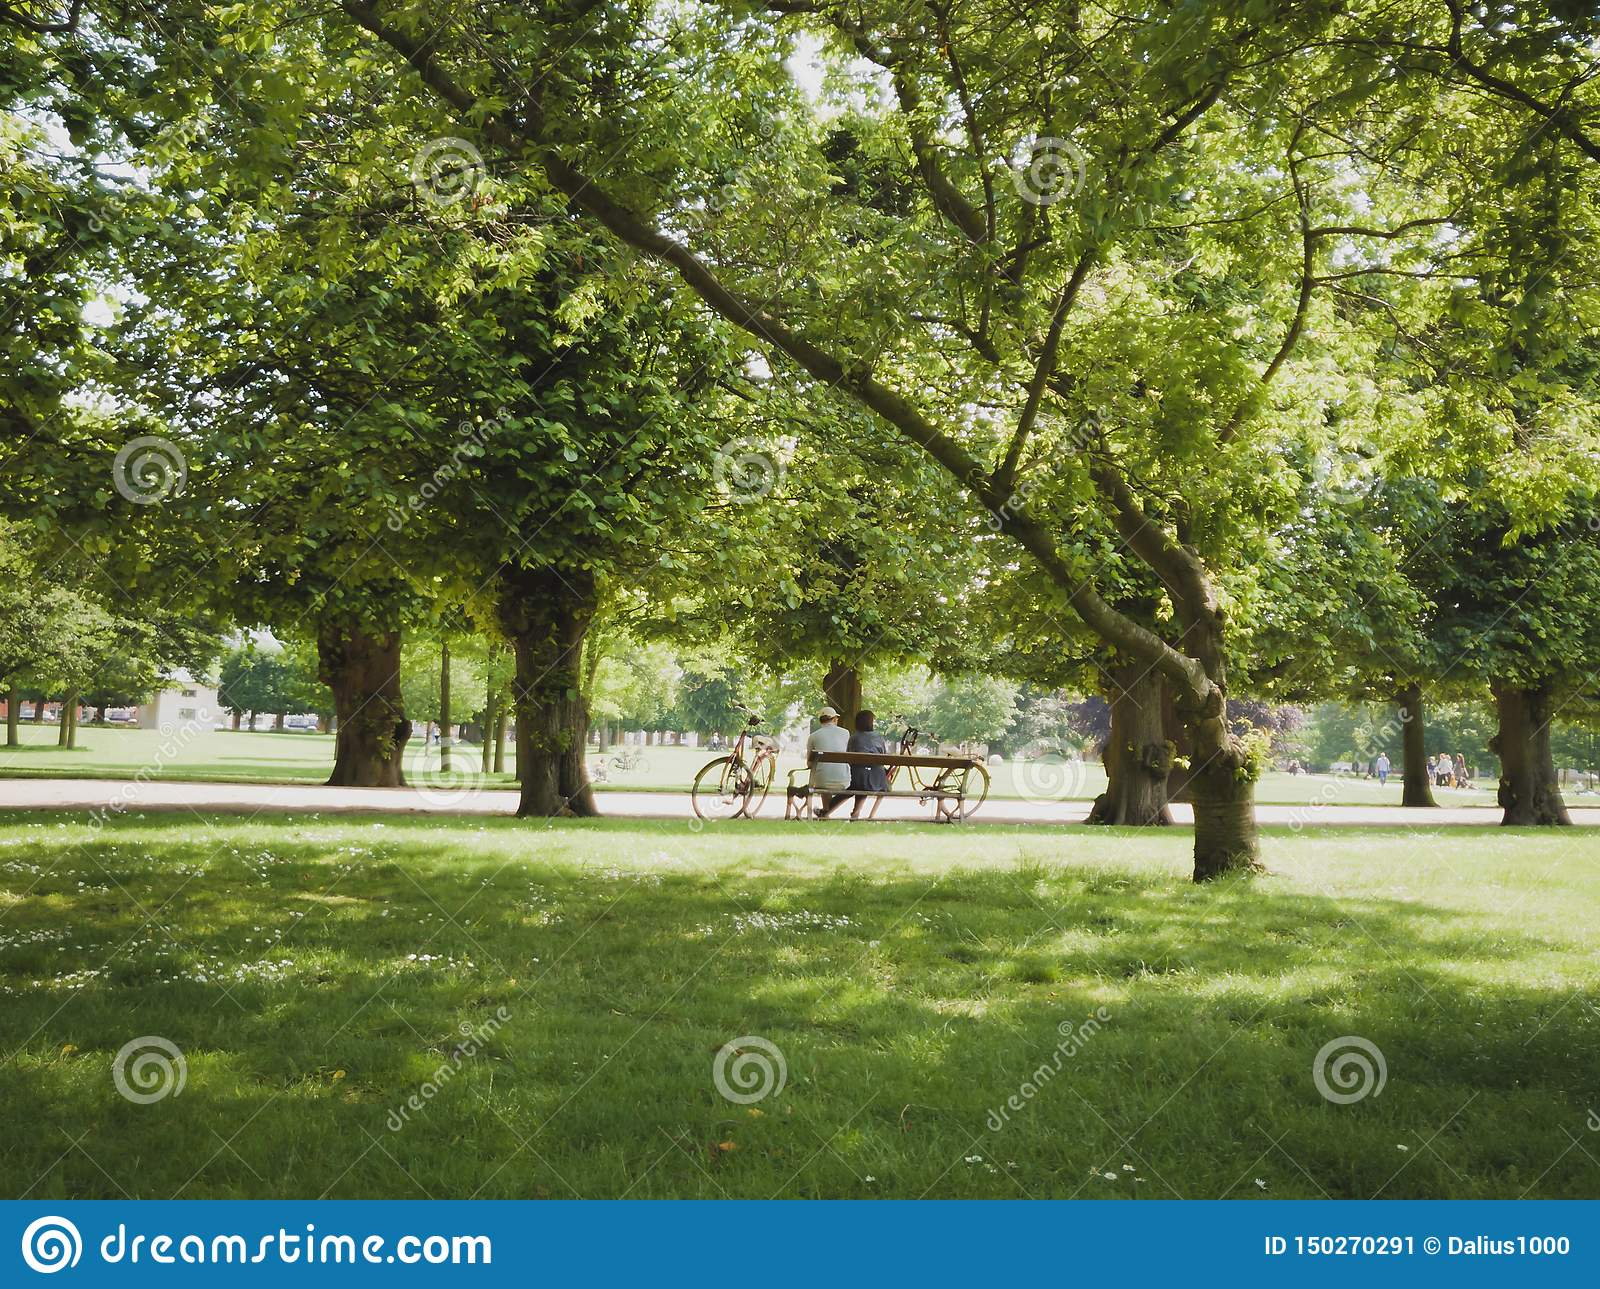 Older couple sitting in park on bench with bicycles Copenhagen city Denmark